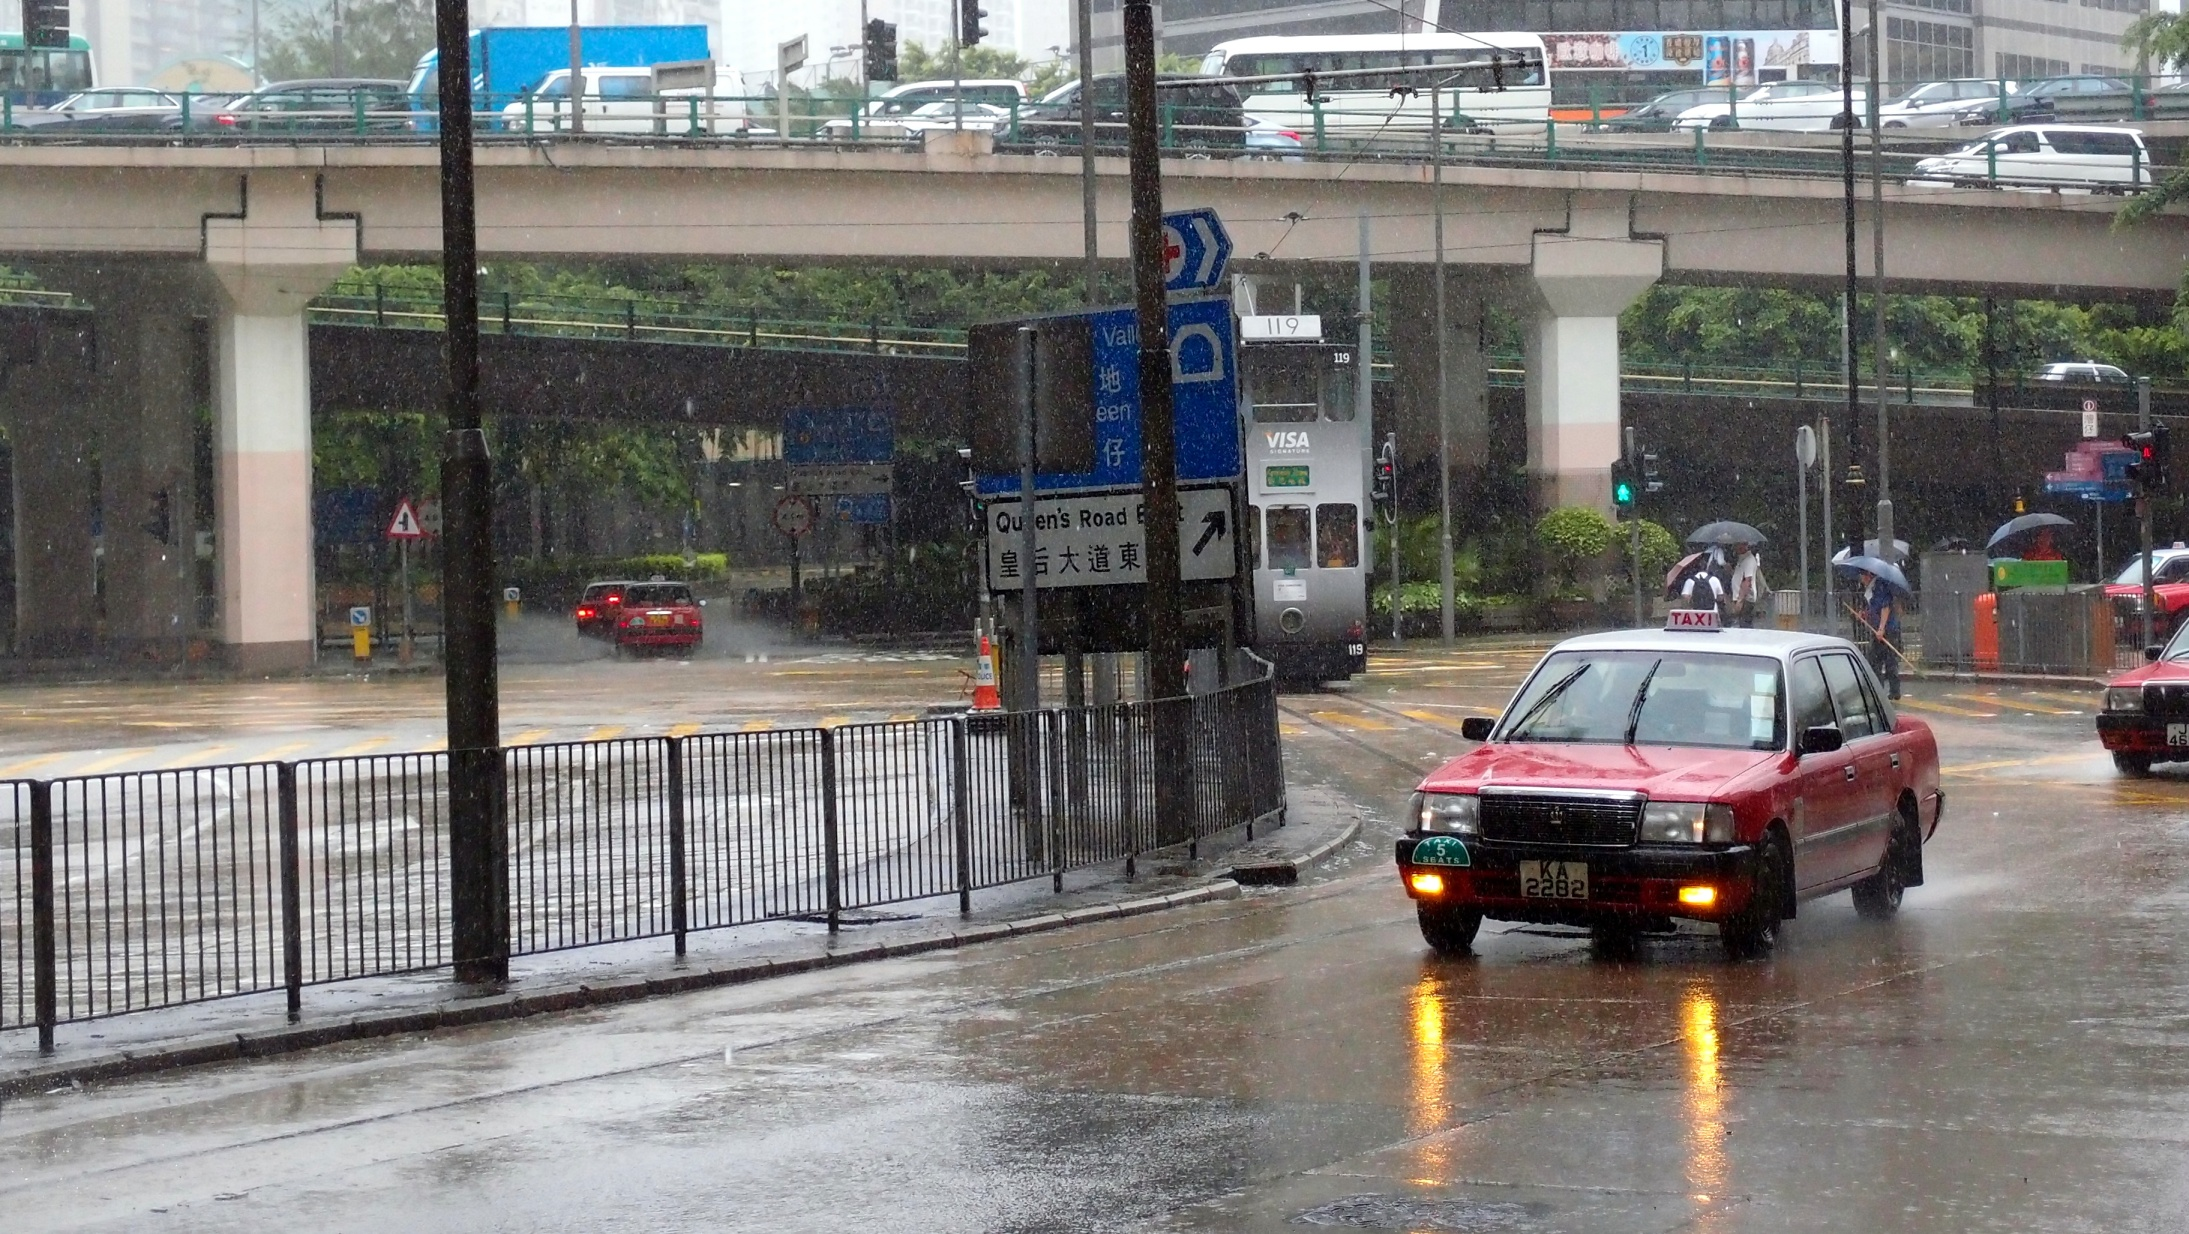 Try catching a taxi when it rains